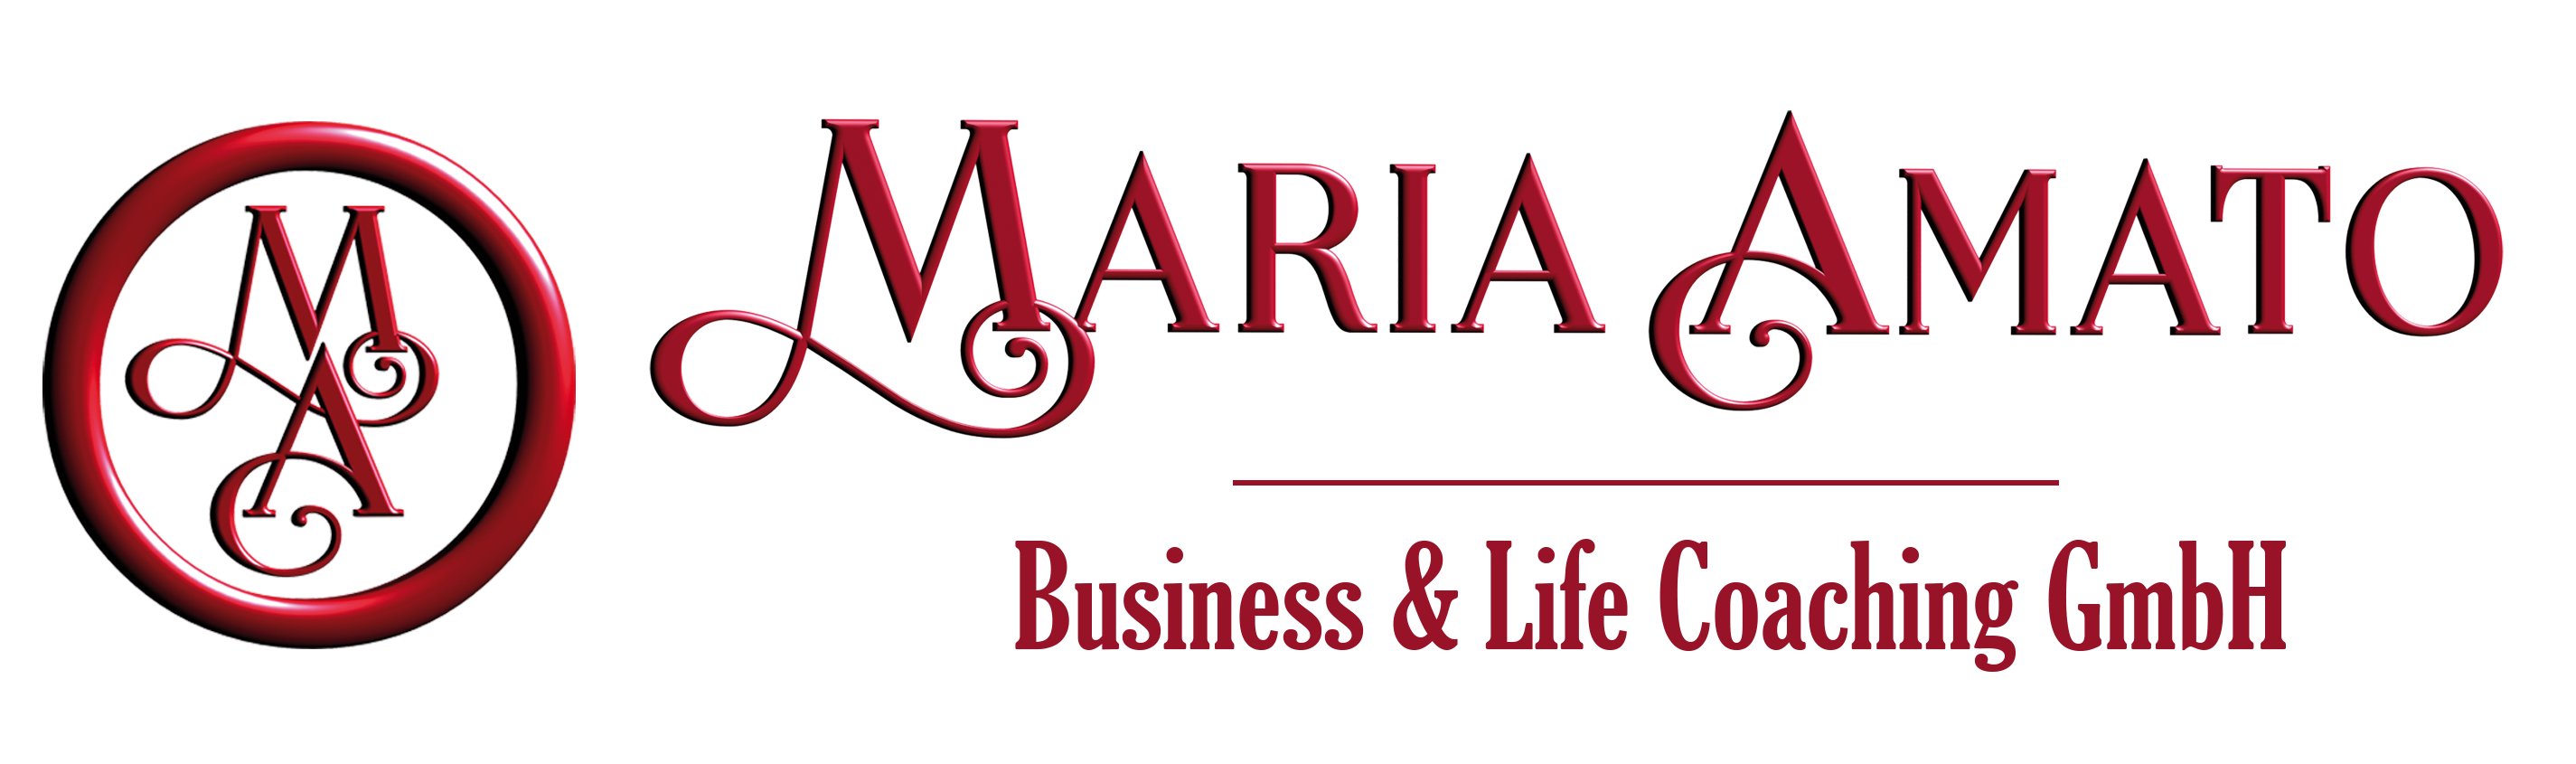 Maria Amato Business & Life Coaching GmbH